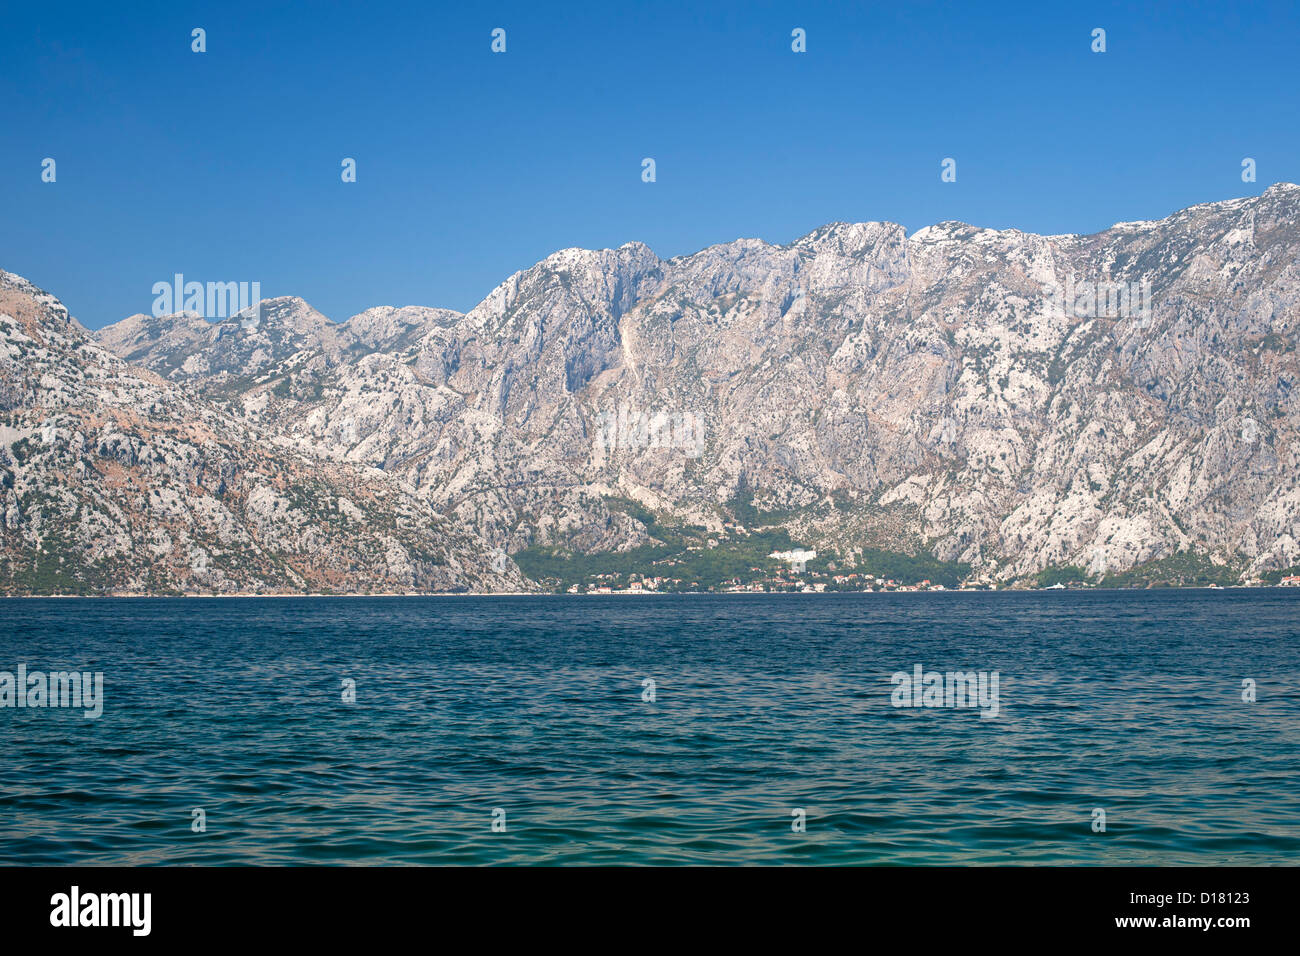 View of the mountains and houses lining the edge of Kotor Bay in Montenegro. - Stock Image